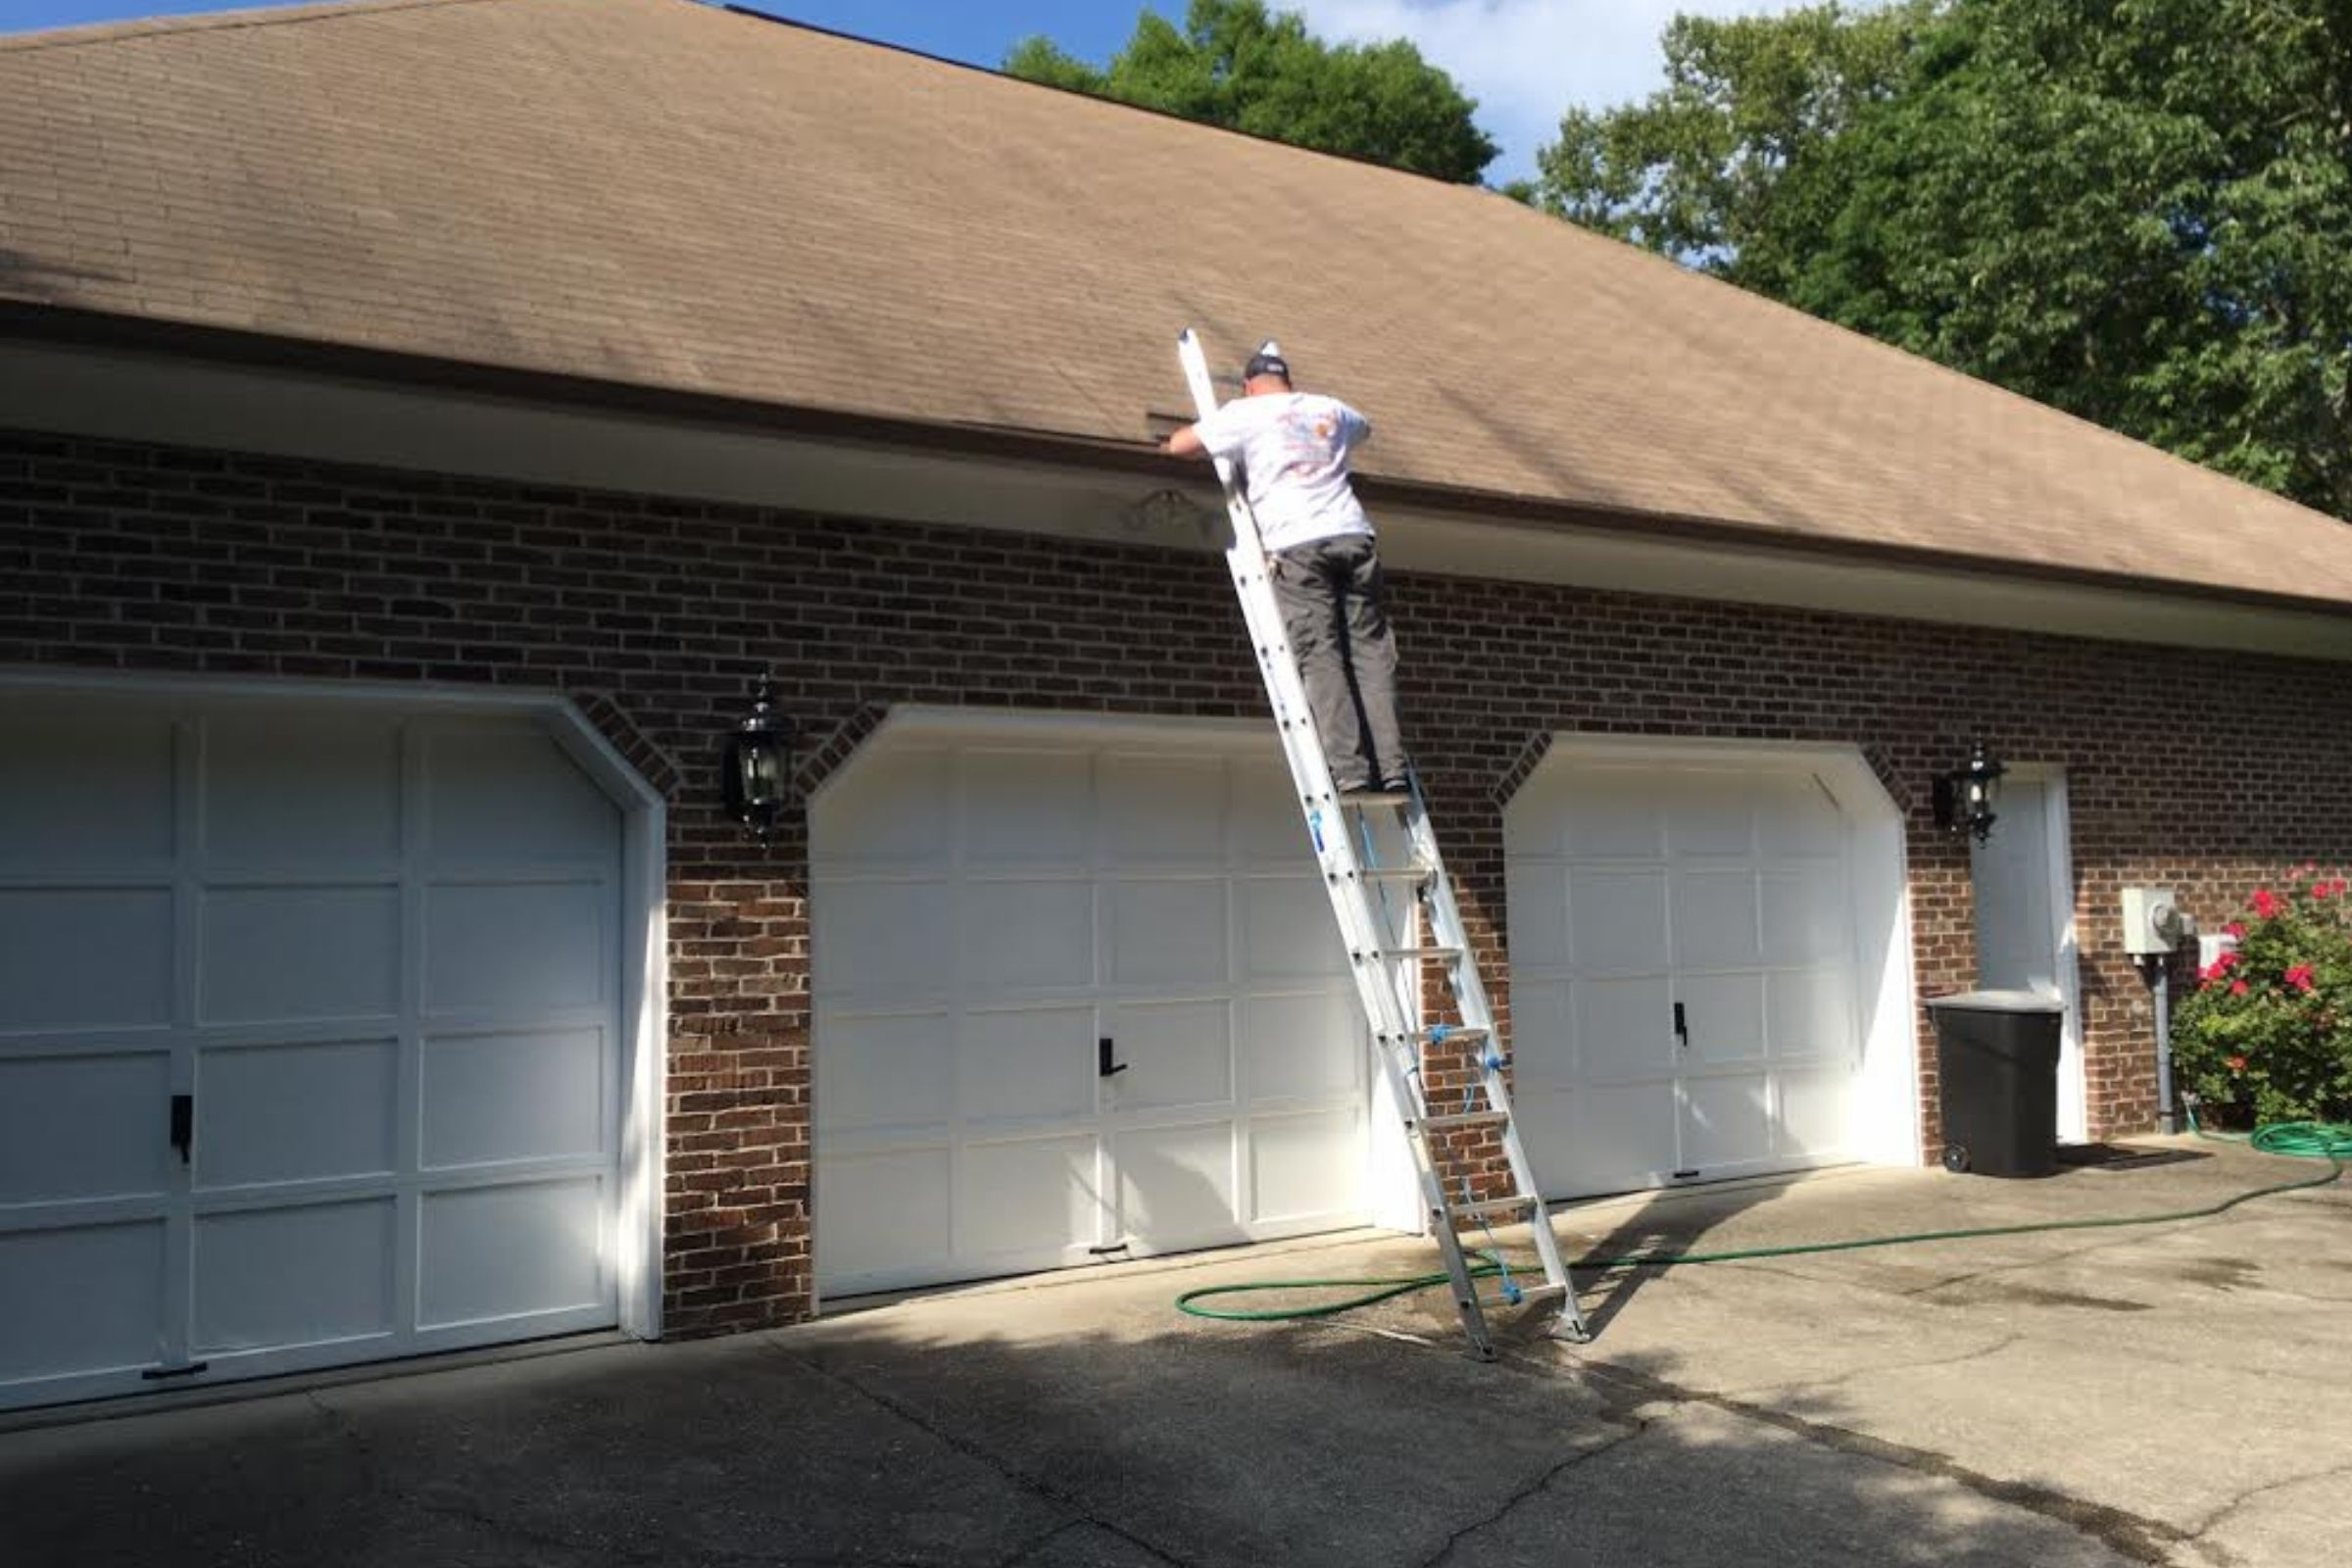 working on a ladder to clean gutters